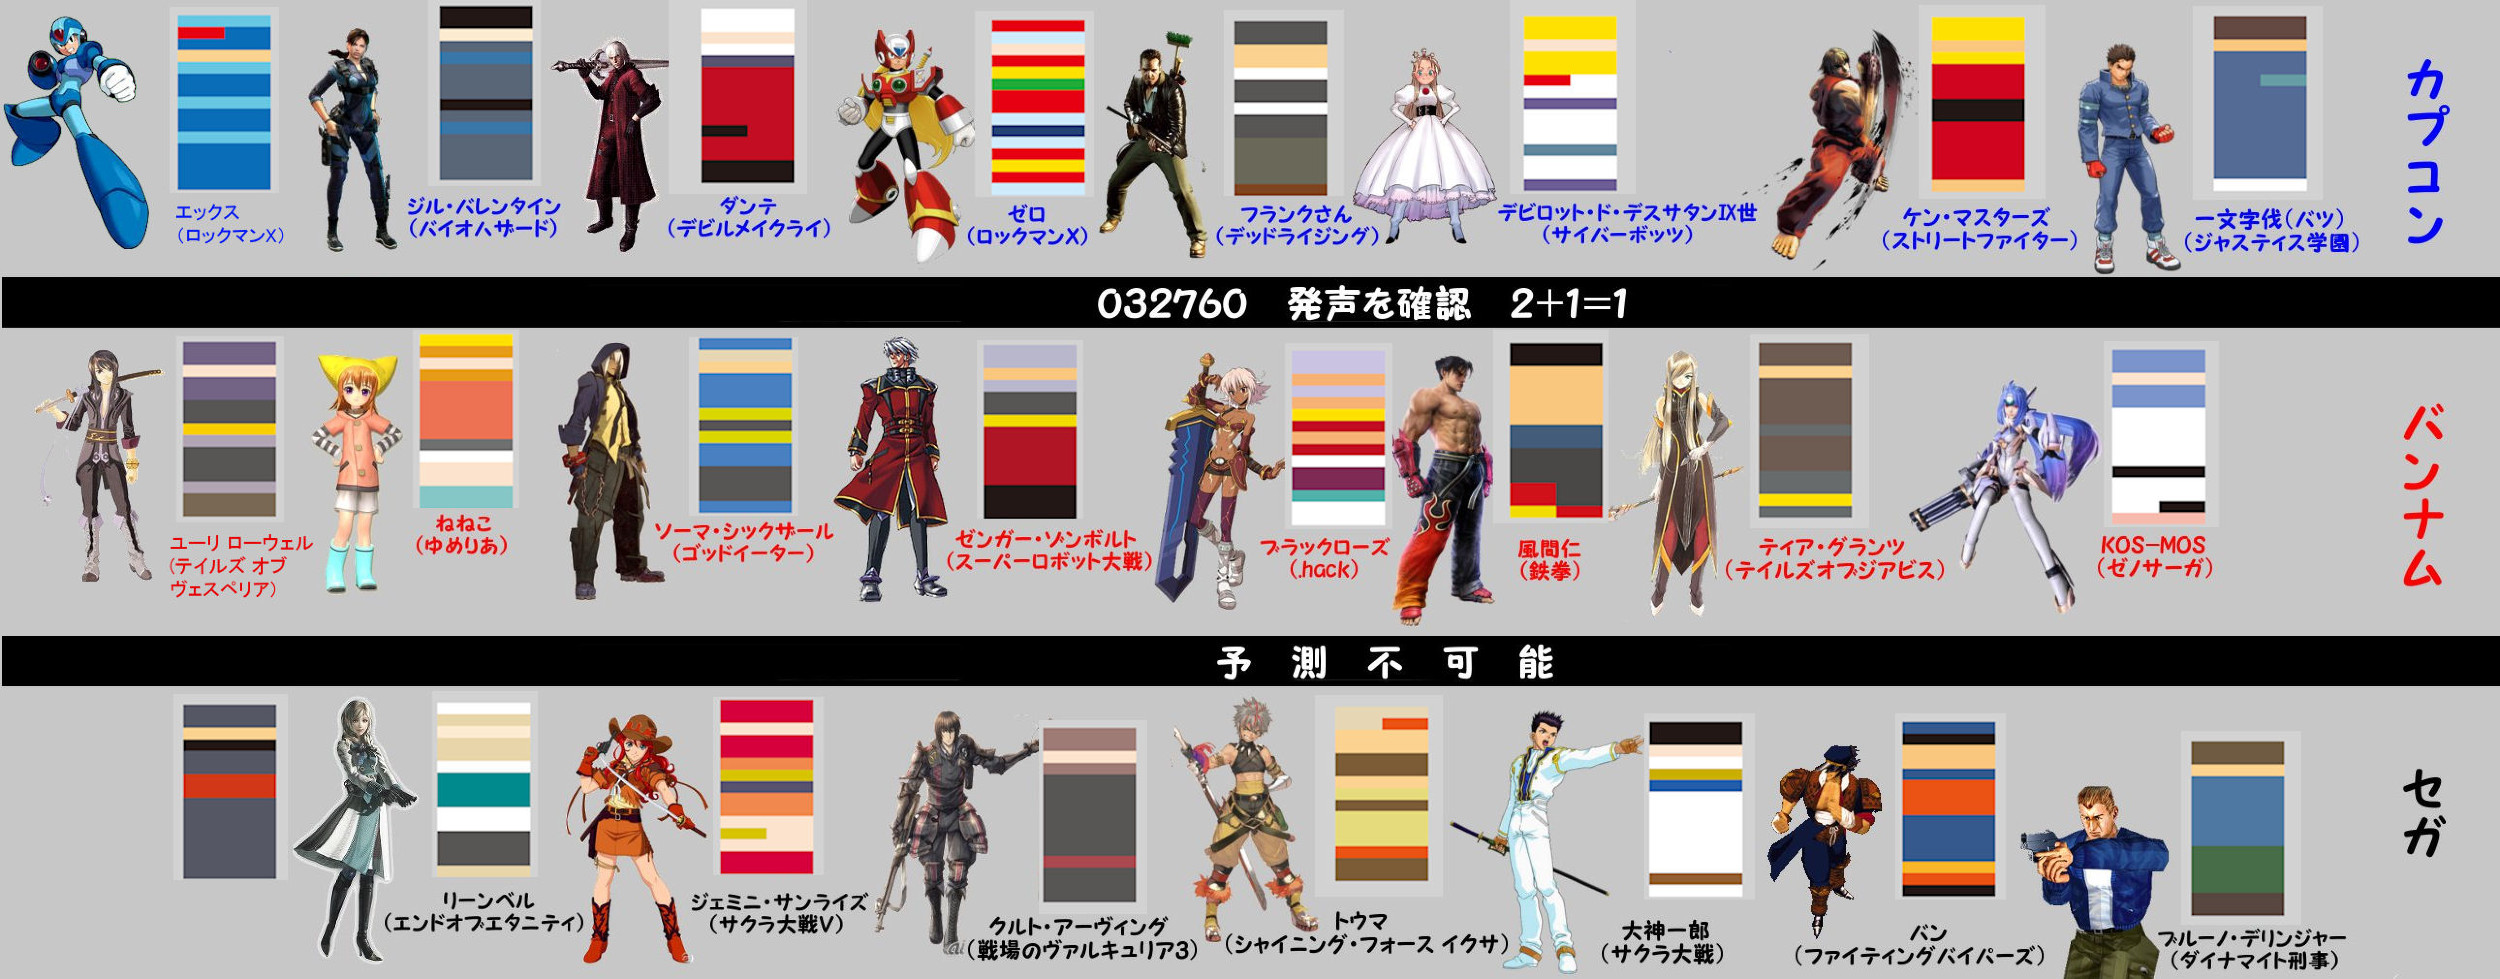 project_x_zone_character_list